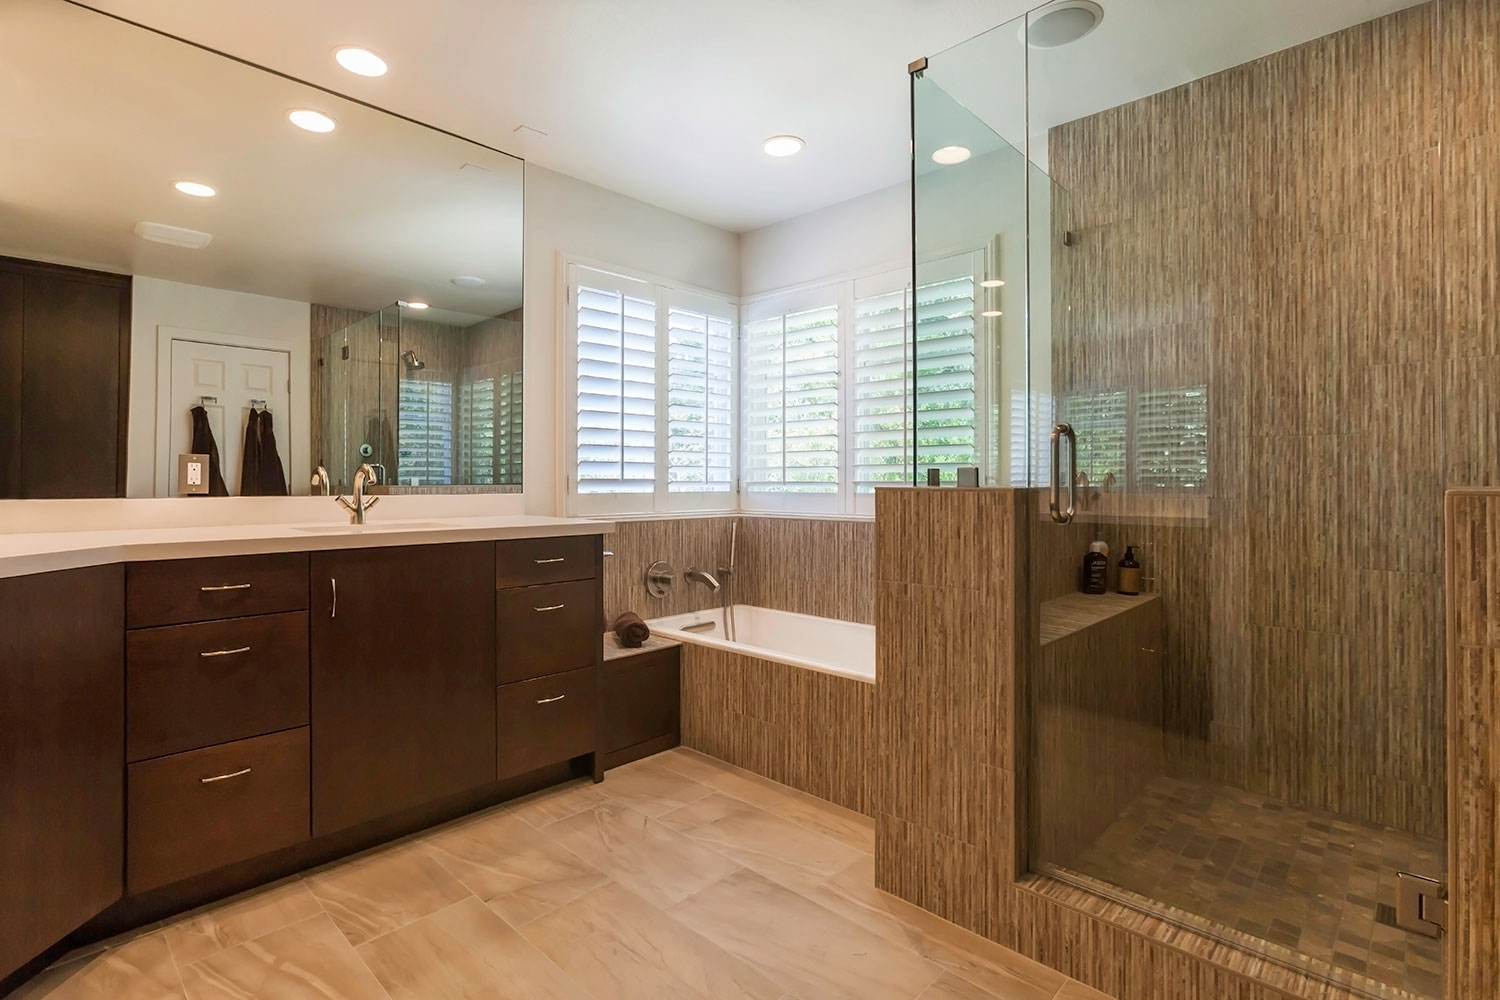 Custom Bathroom Remodeling Contractor For The Thousand Oaks Area - Bathroom remodel thousand oaks